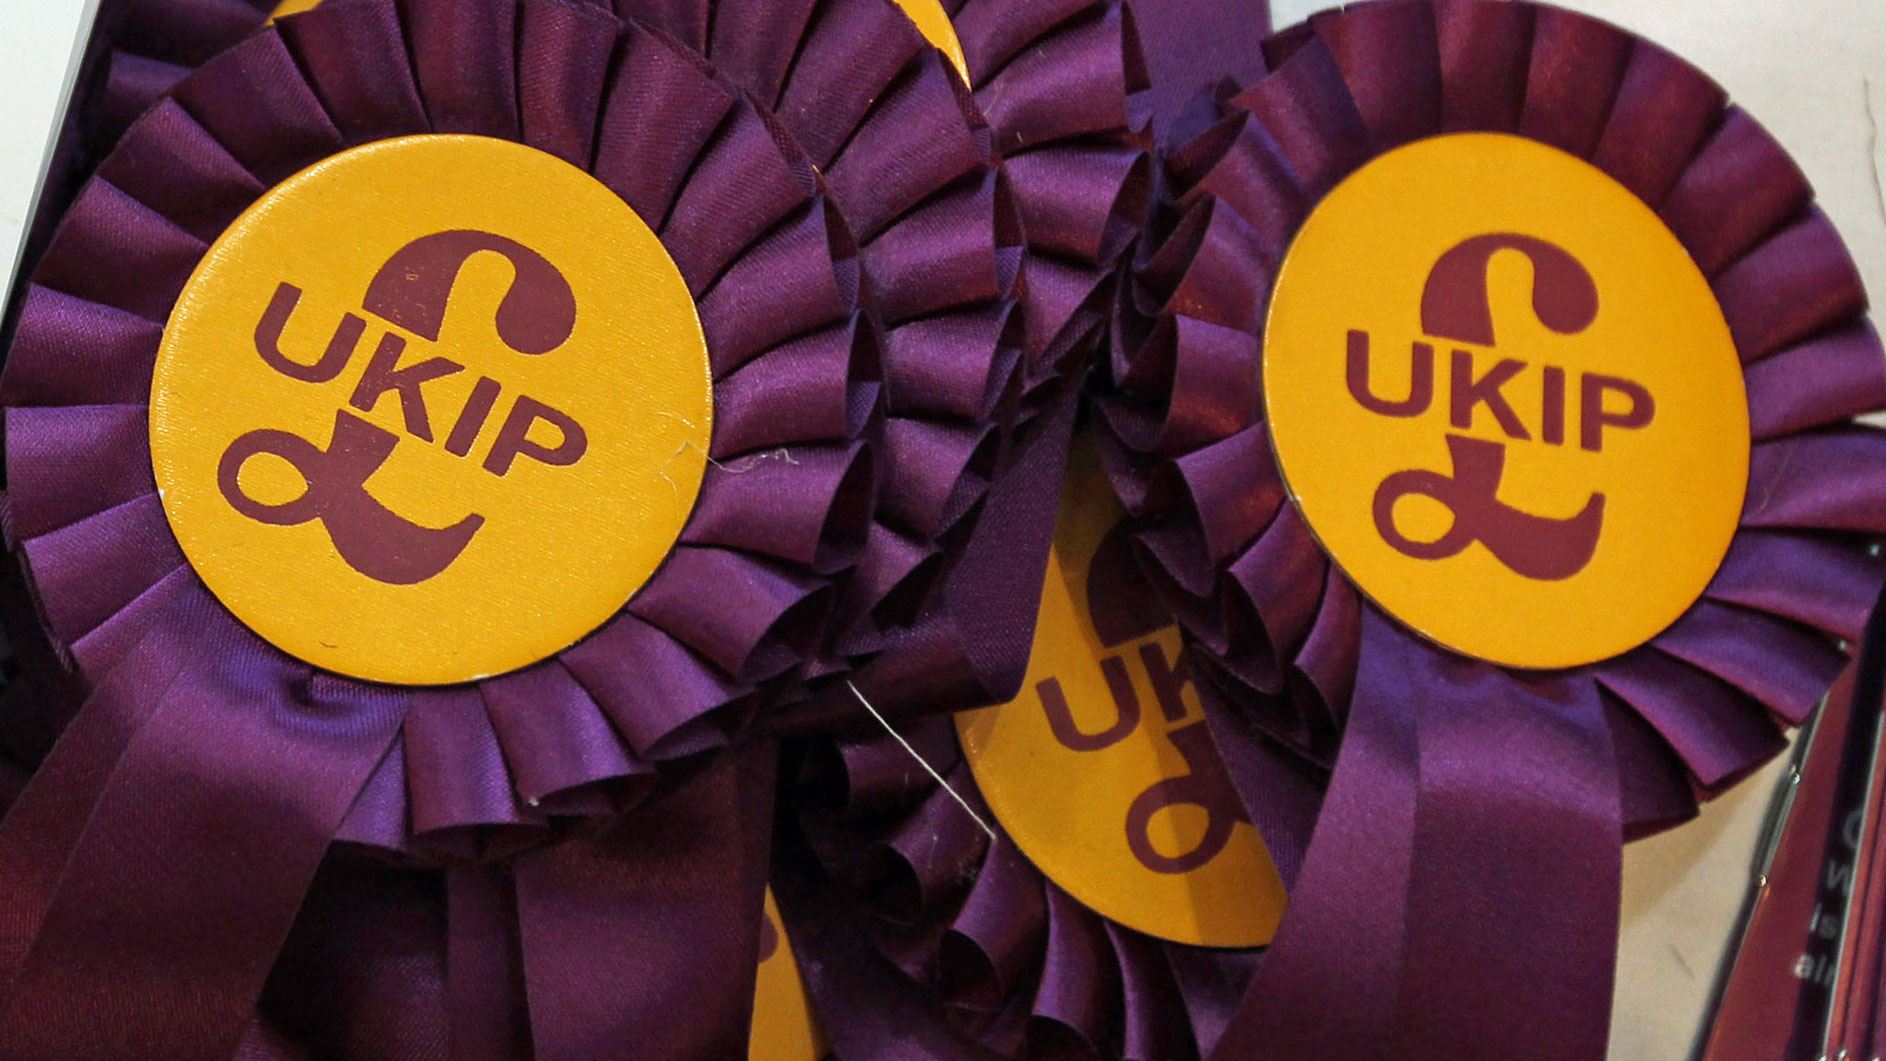 UKIP Candidate says he wants to license mosques